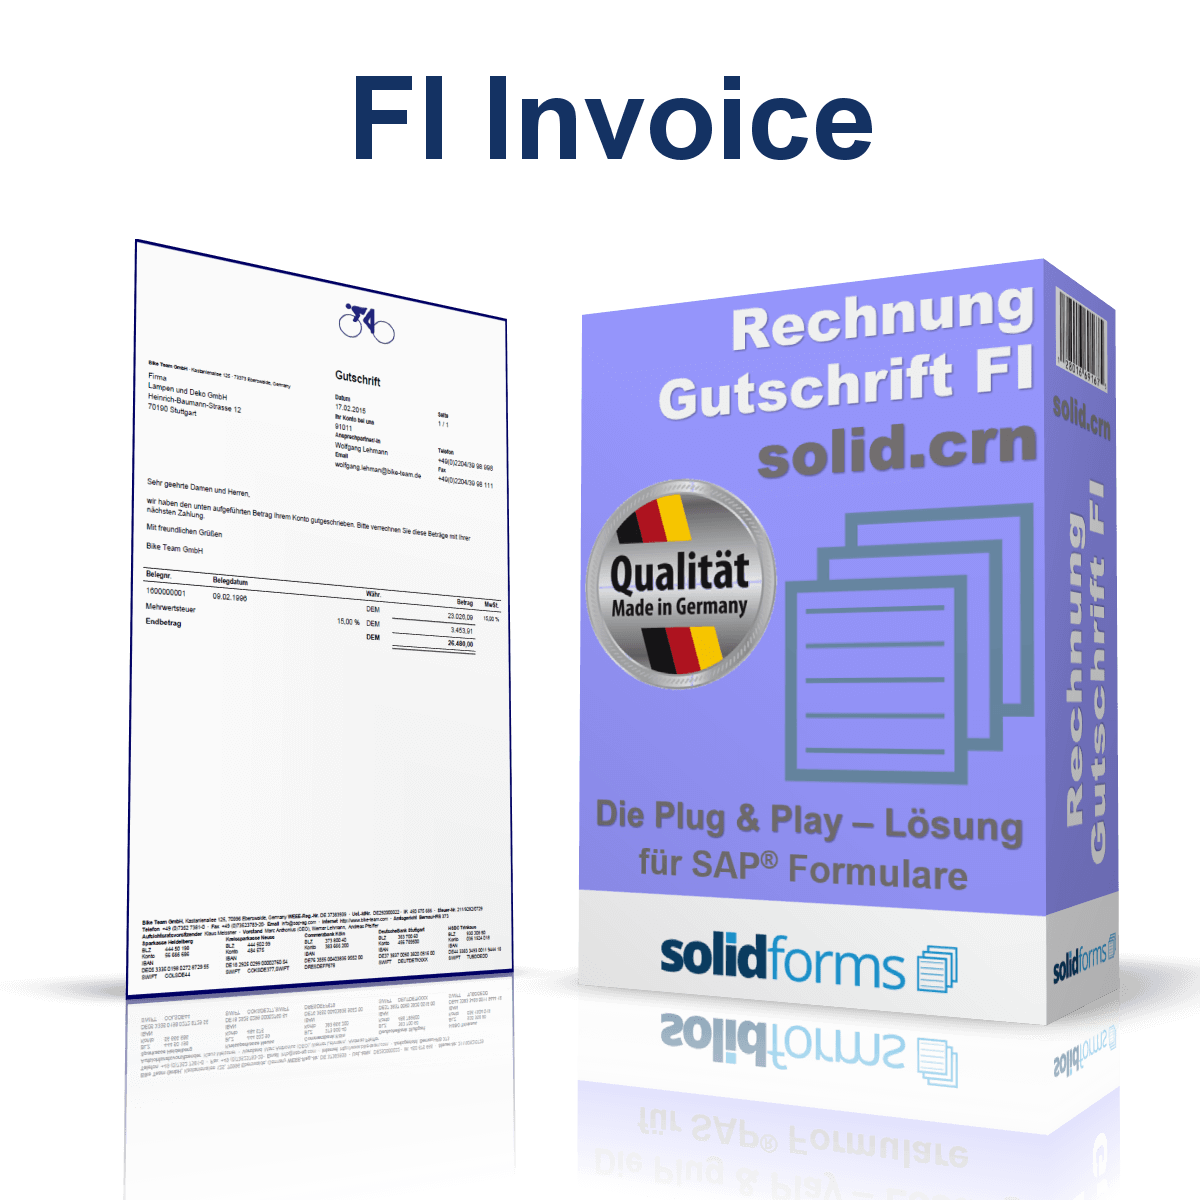 SAP Form FI Invoice + Credit Note based on SAP Interactive Forms by Adobe